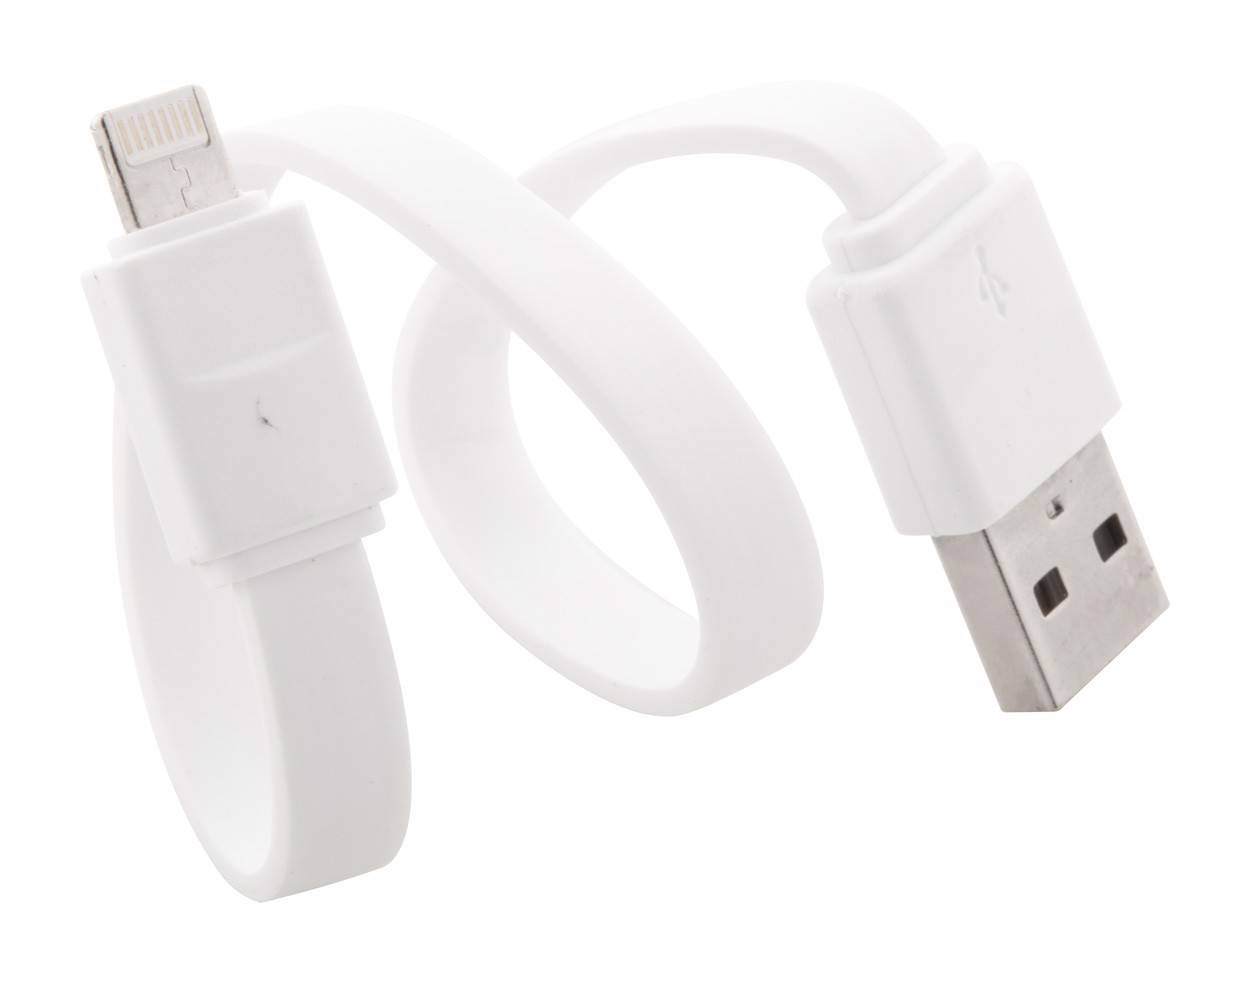 Usb Charger Cable Stash - White / Silver